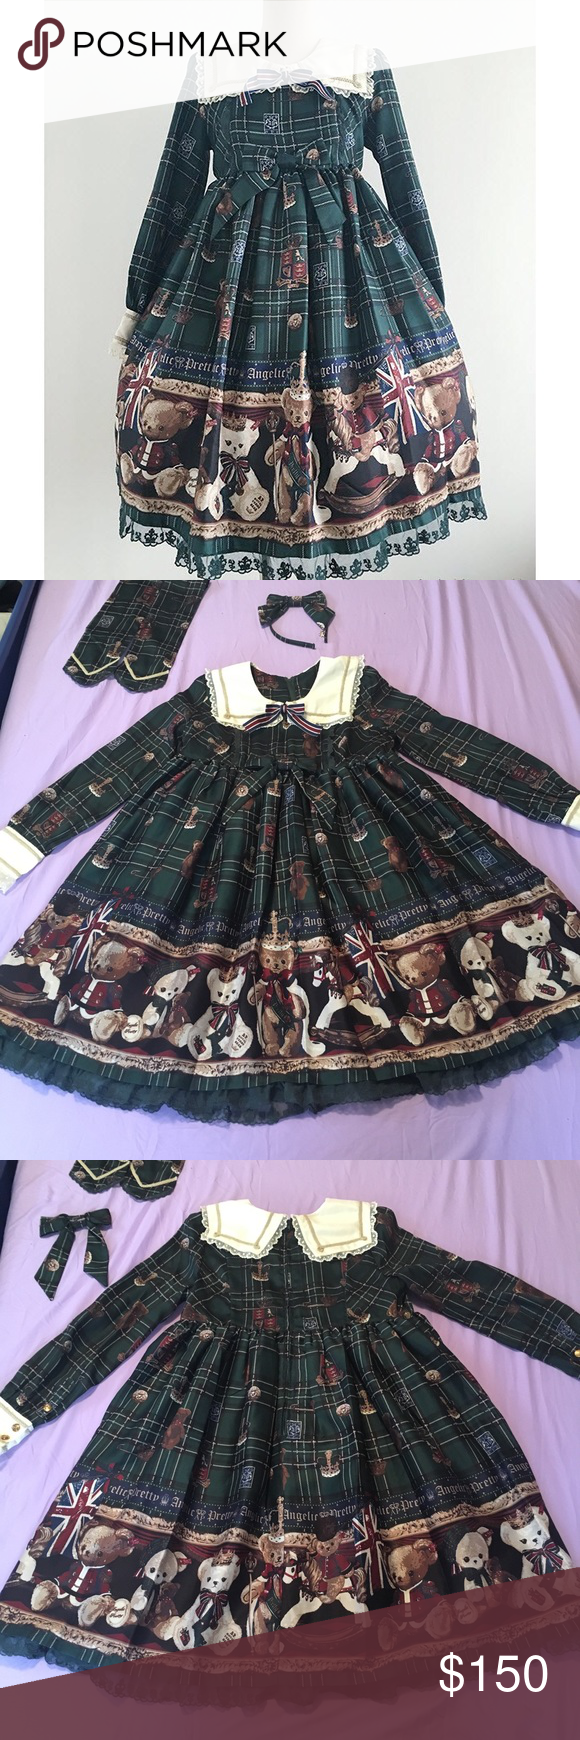 AP British Bear Inspired Lolita Dress Inspired/non authentic lolita dress made to resemble Japanese lolita brand Angelic Pretty's British Bear OP in green. Comes with waist ties and matching KC headbow. Full description including damage is disclosed in the last photo as it was much too long to fit here. kawaii japanese cute princess classic sweet rare lovely dolly Cutie Princess Doll Dresses